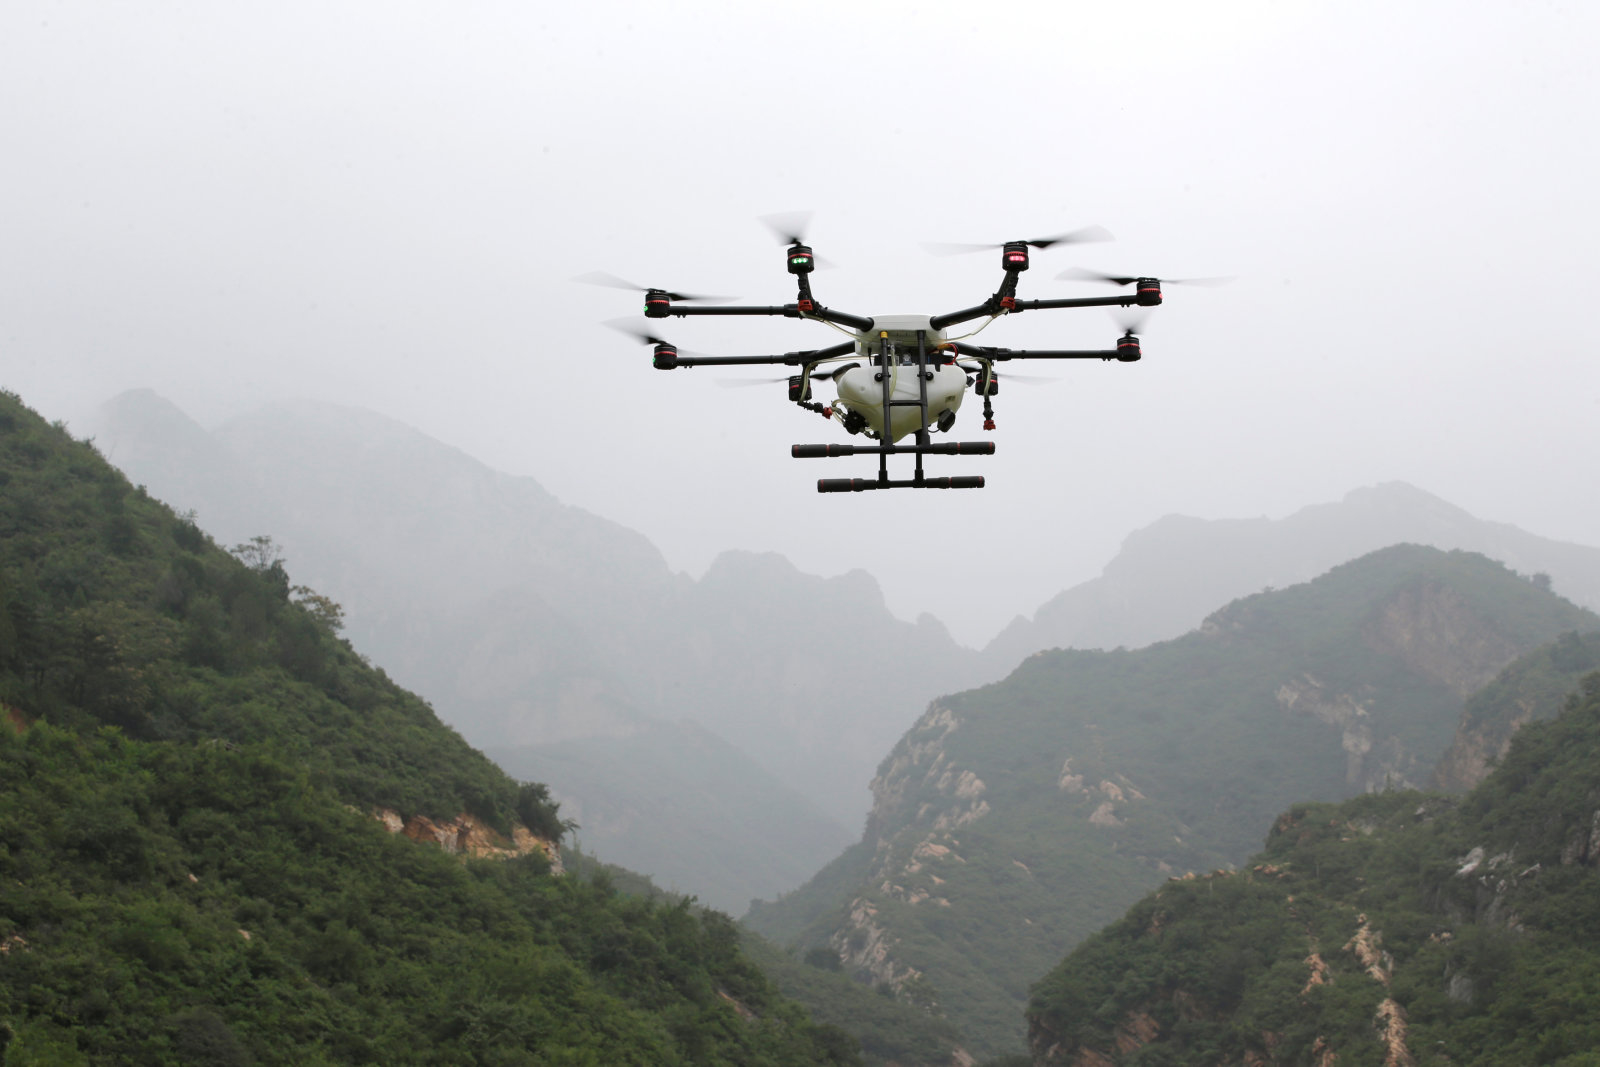 UN propose to register all drones in a global database